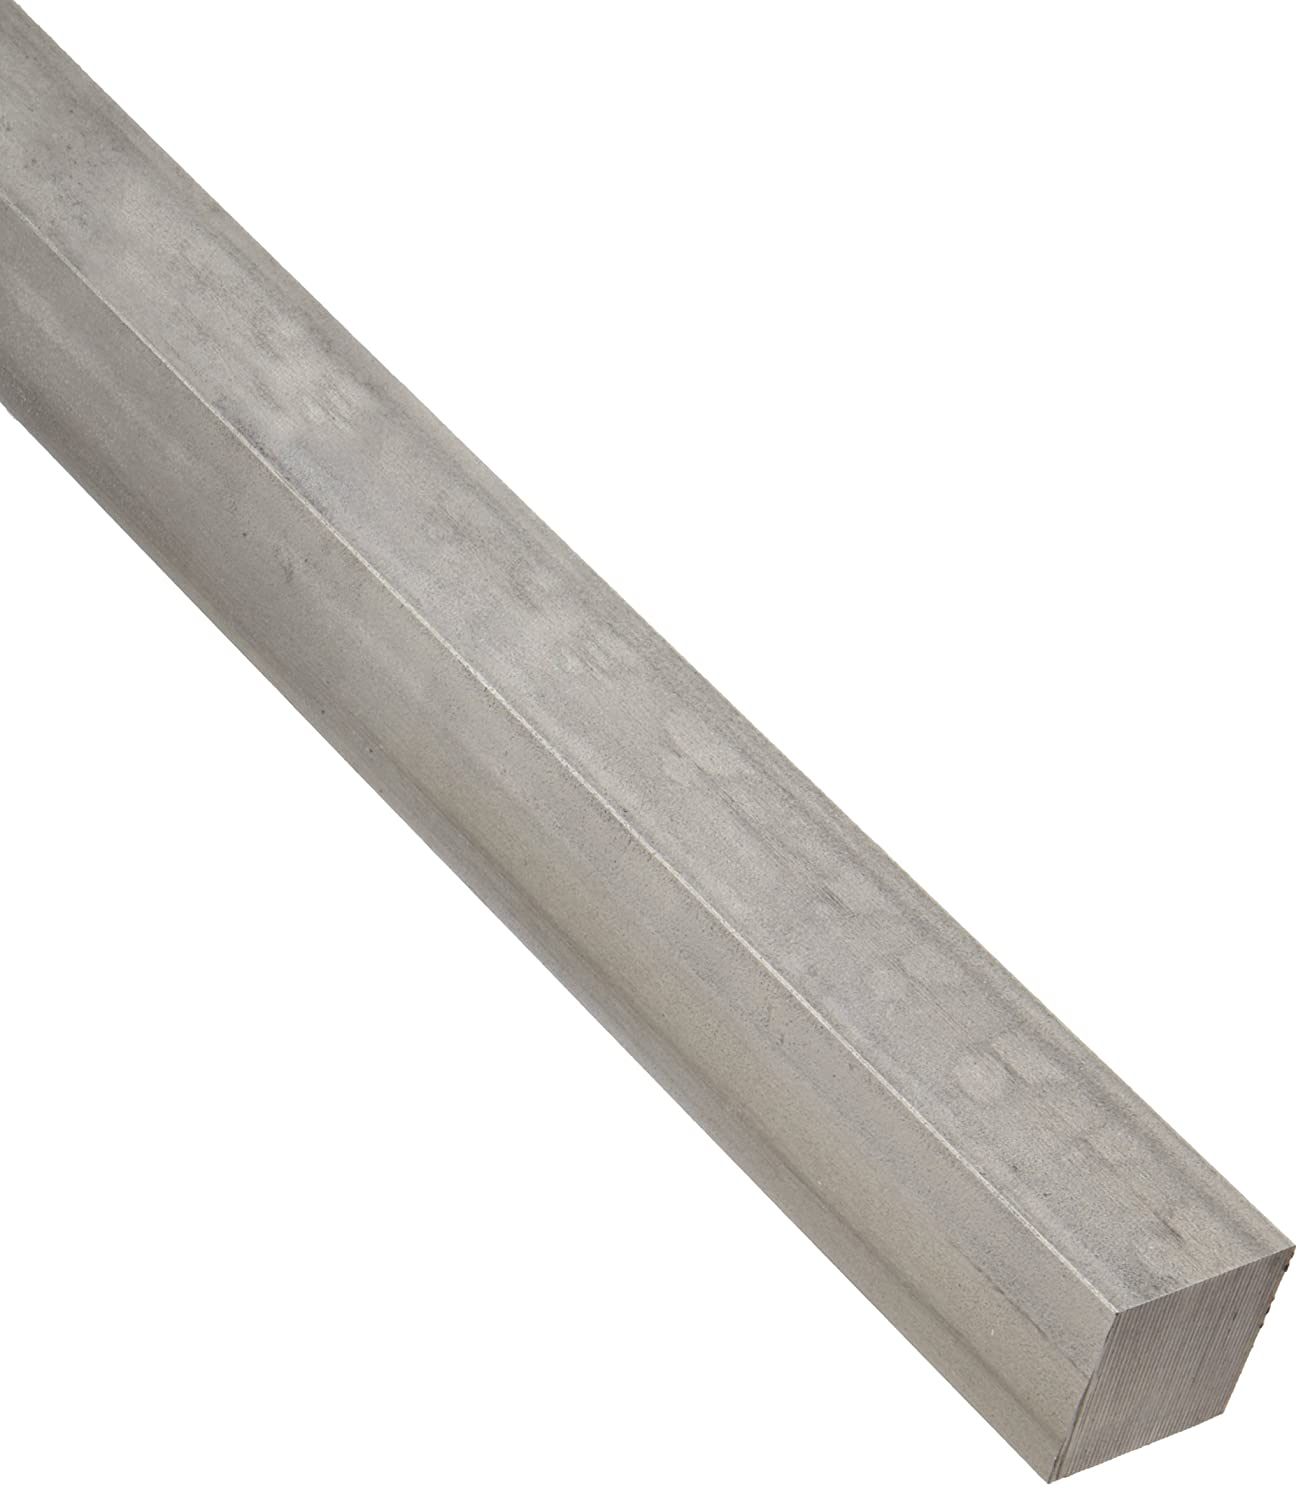 Annealed Finish 36 Length 7//8 Thickness 7//8 Width 36 Length Small Parts 3901 7//8 Width 304 Stainless Steel Rectangular Bar ASTM A276 Mill 7//8 Thickness Unpolished